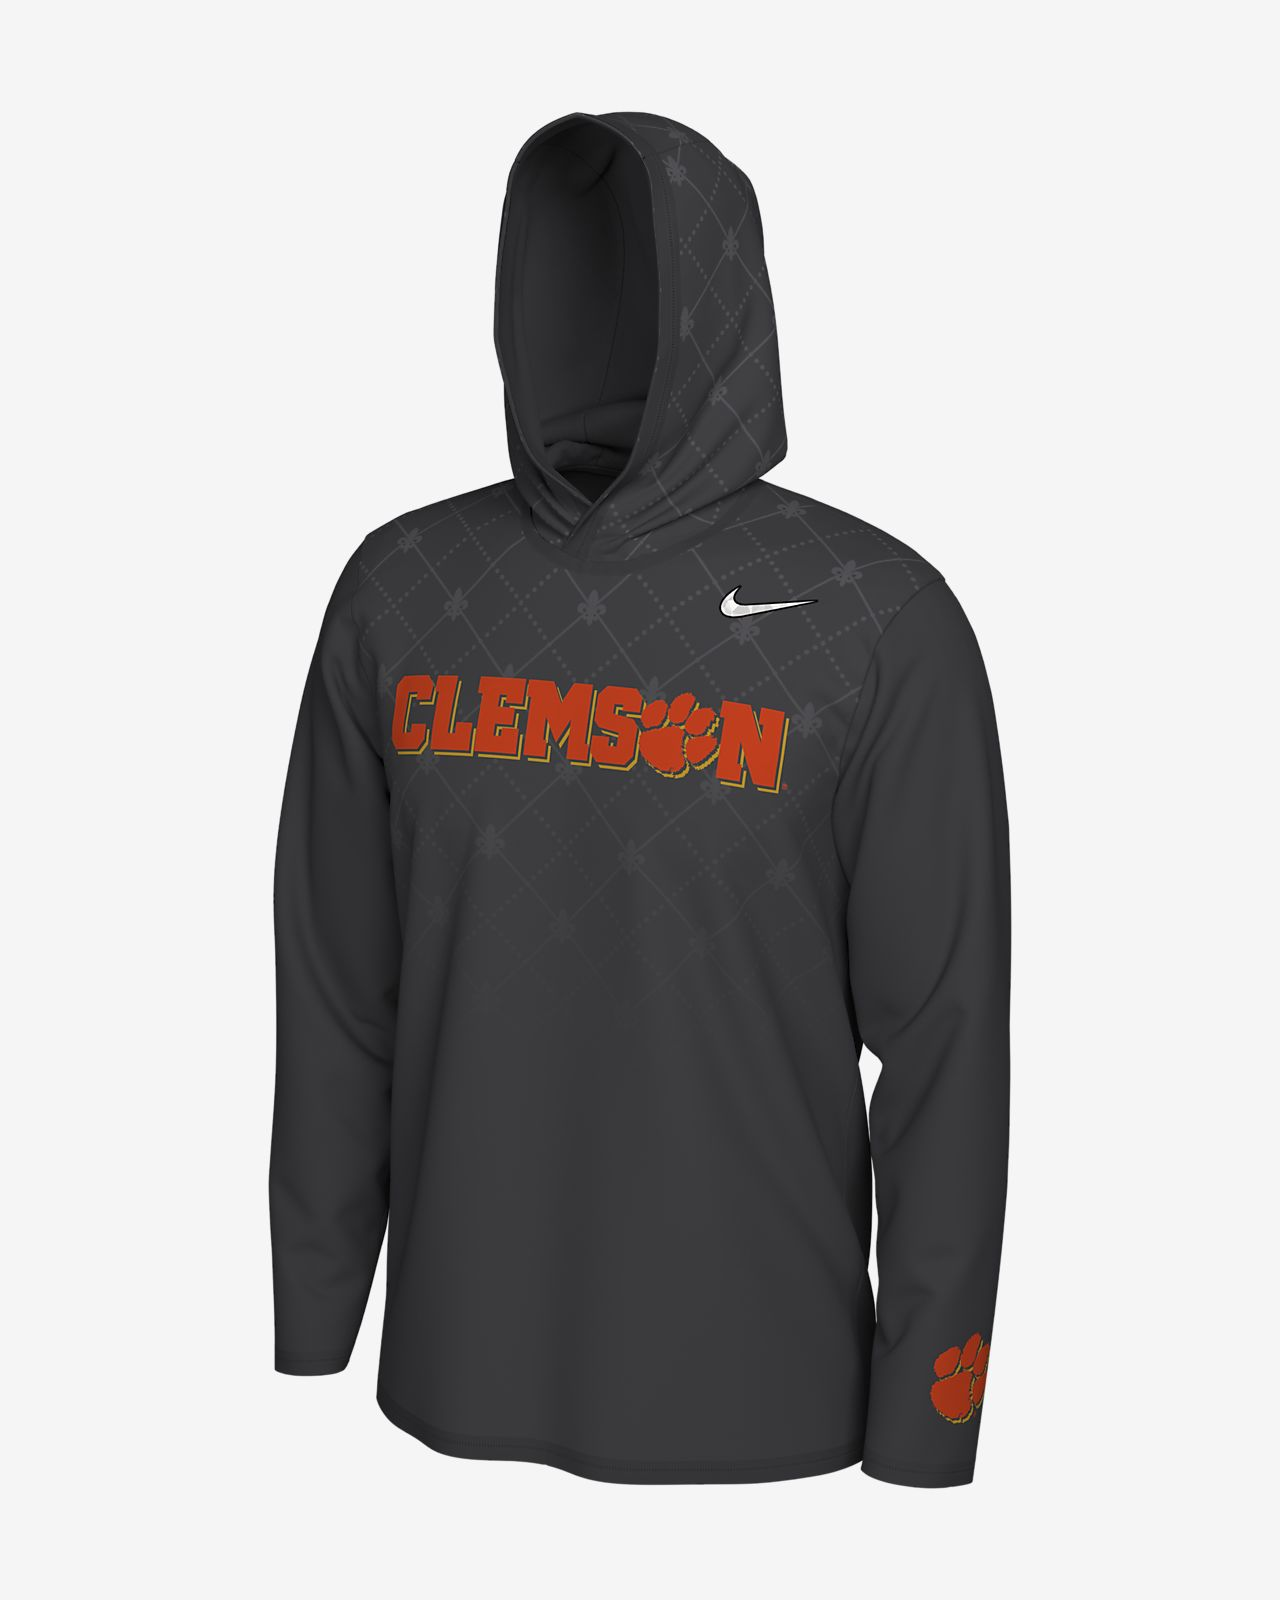 Nike College Dri-FIT Playoff Bound (Clemson) Men's Long-Sleeve Hooded Top